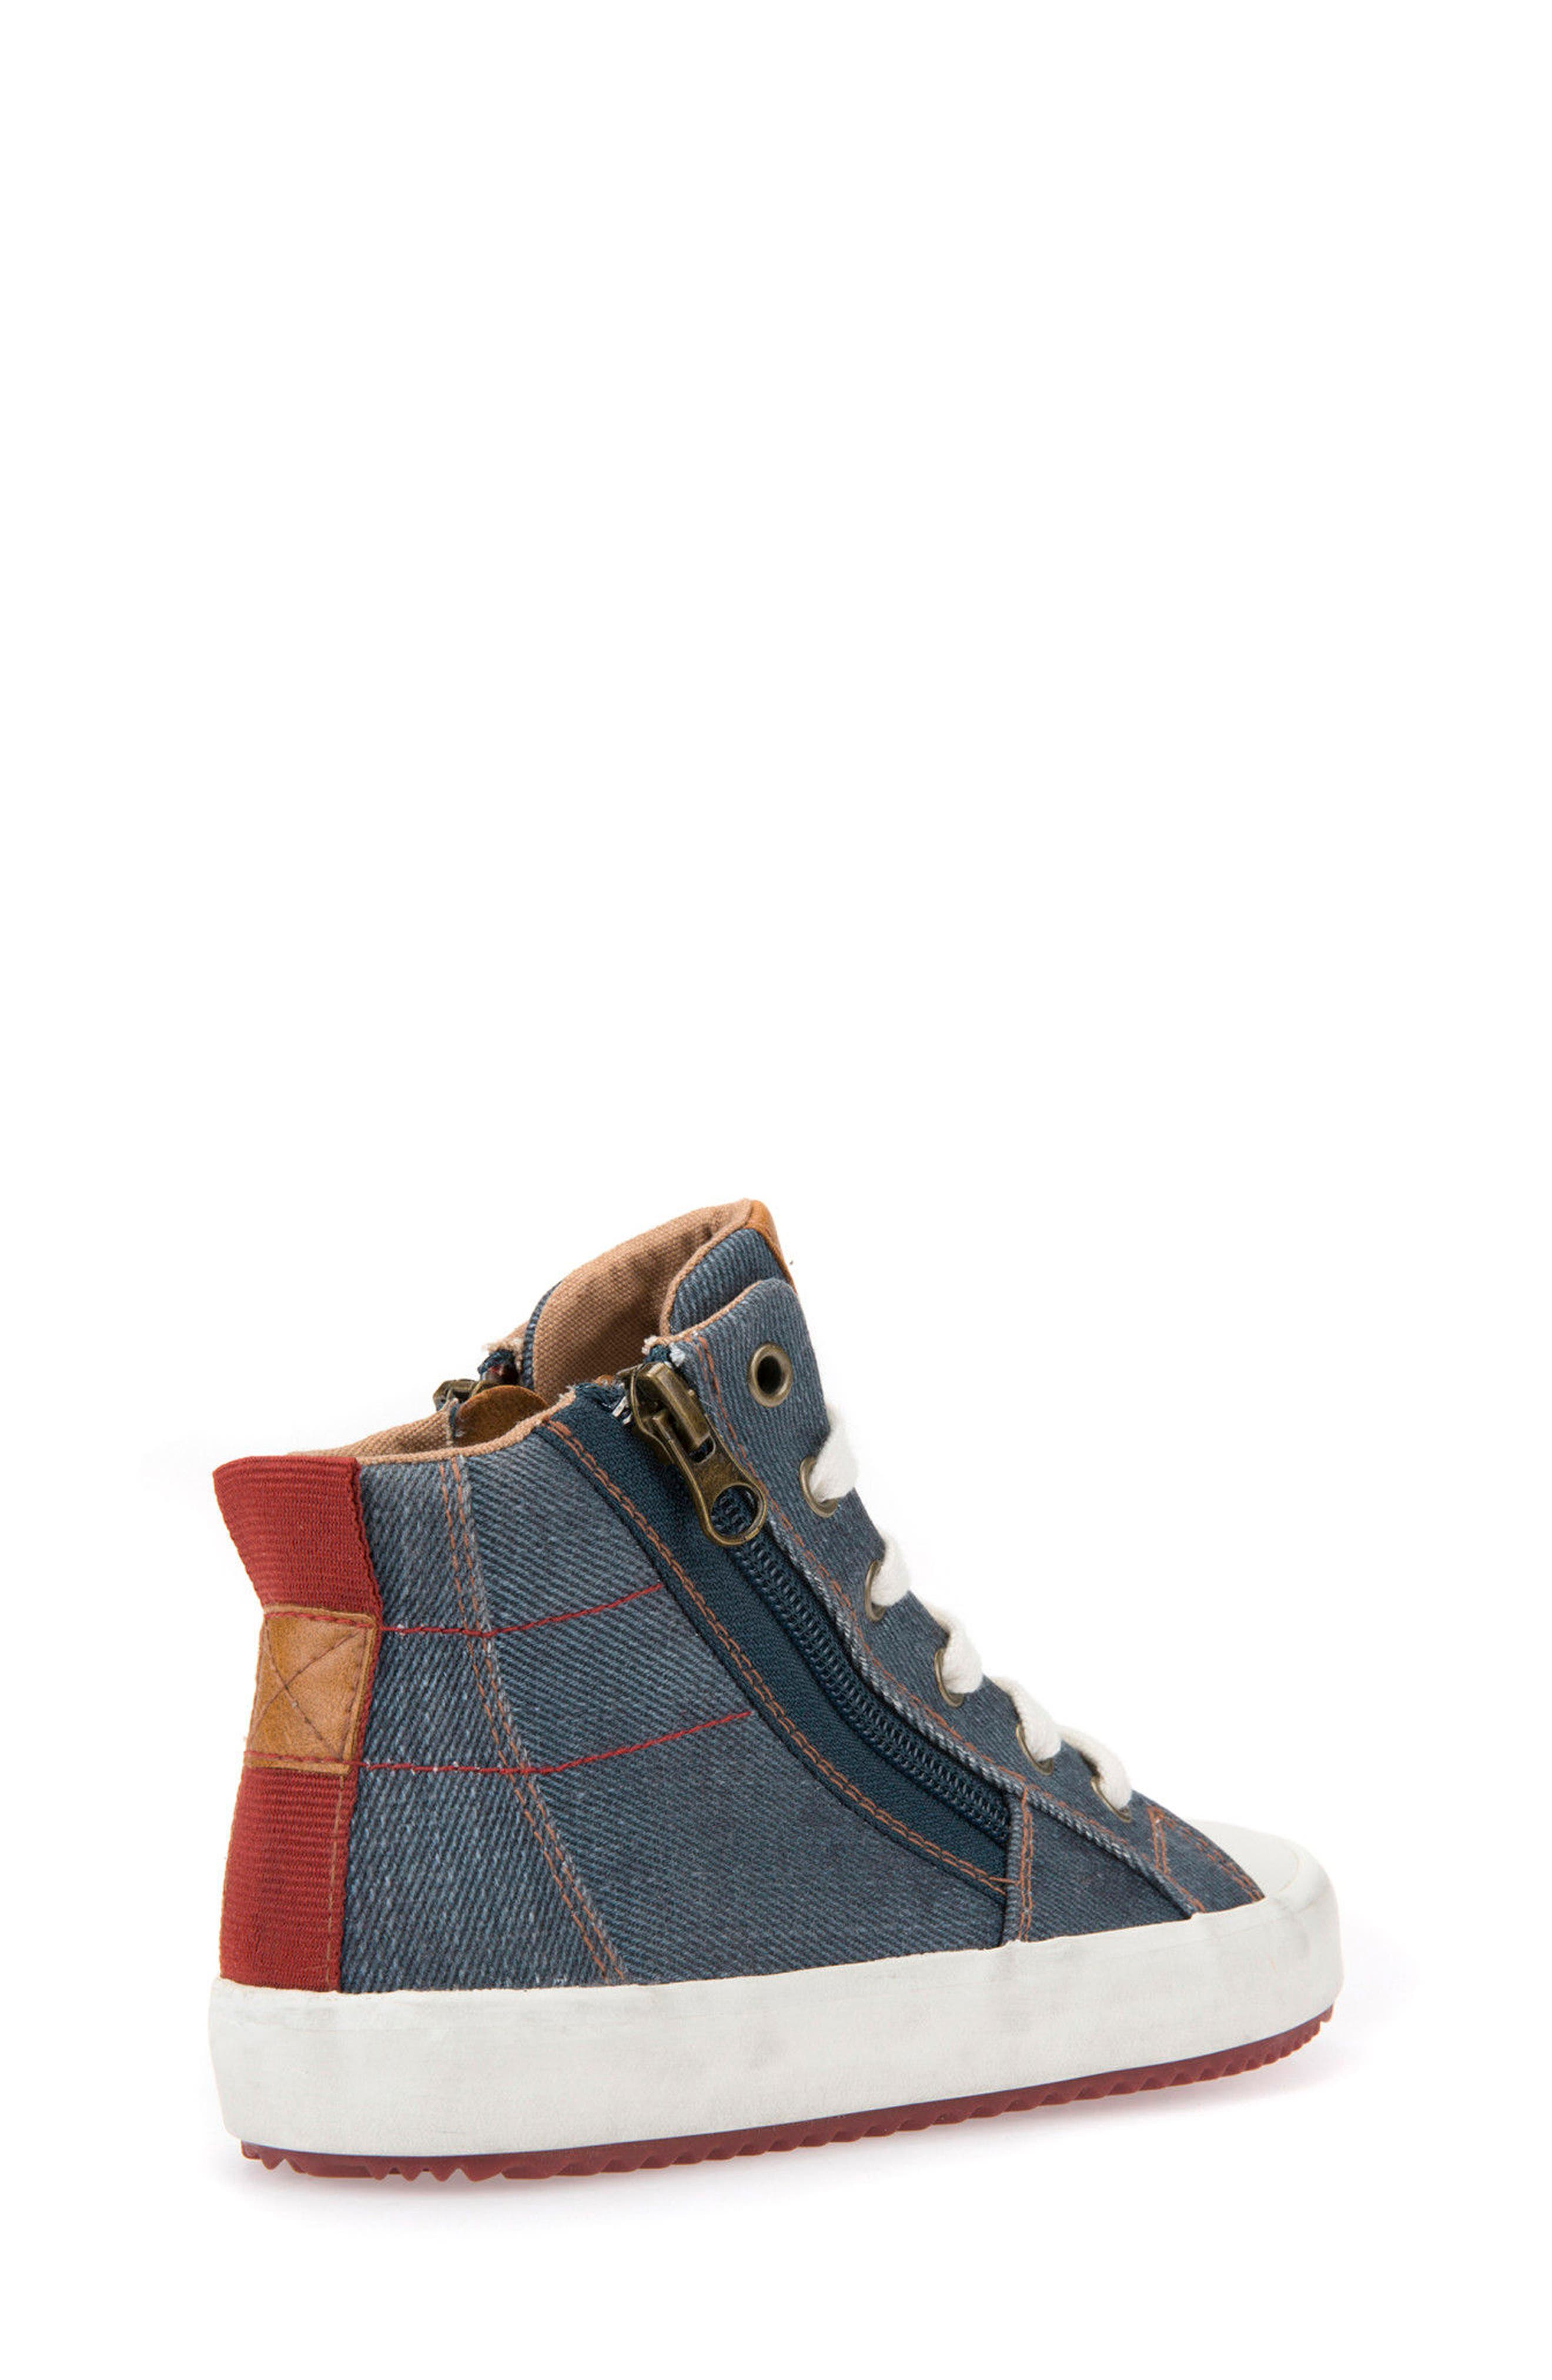 Alonisso High Top Sneaker,                             Alternate thumbnail 2, color,                             BLUE/ DARK RED